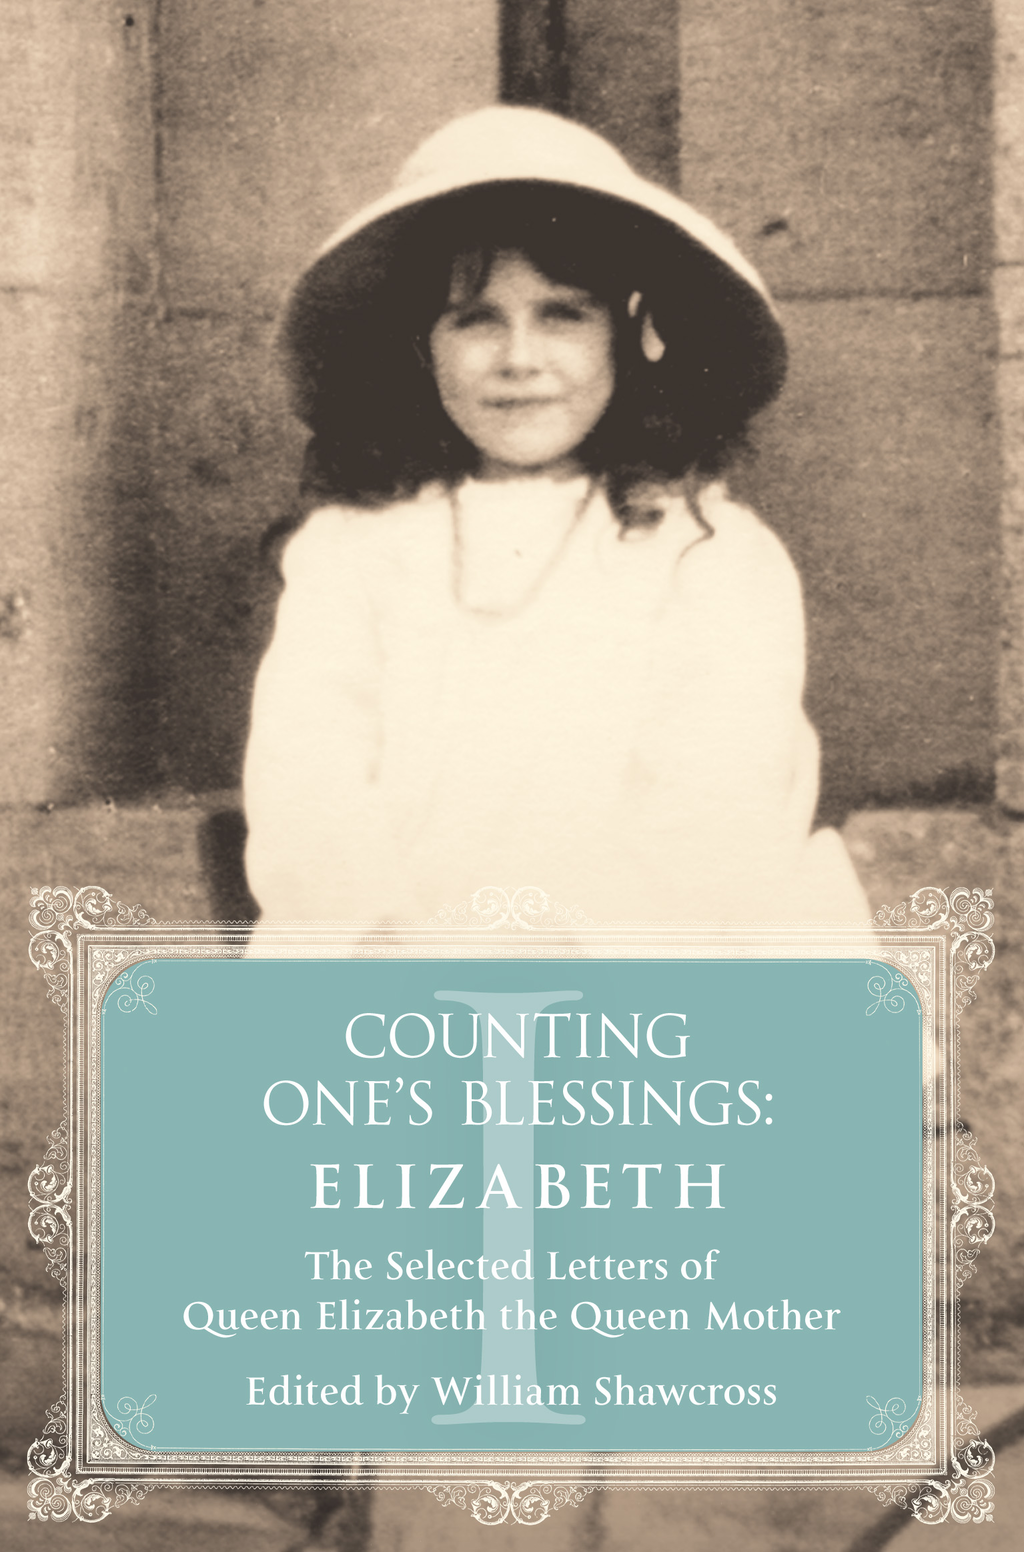 Elizabeth The Selected Letters of Queen Elizabeth the Queen Mother: Part 1